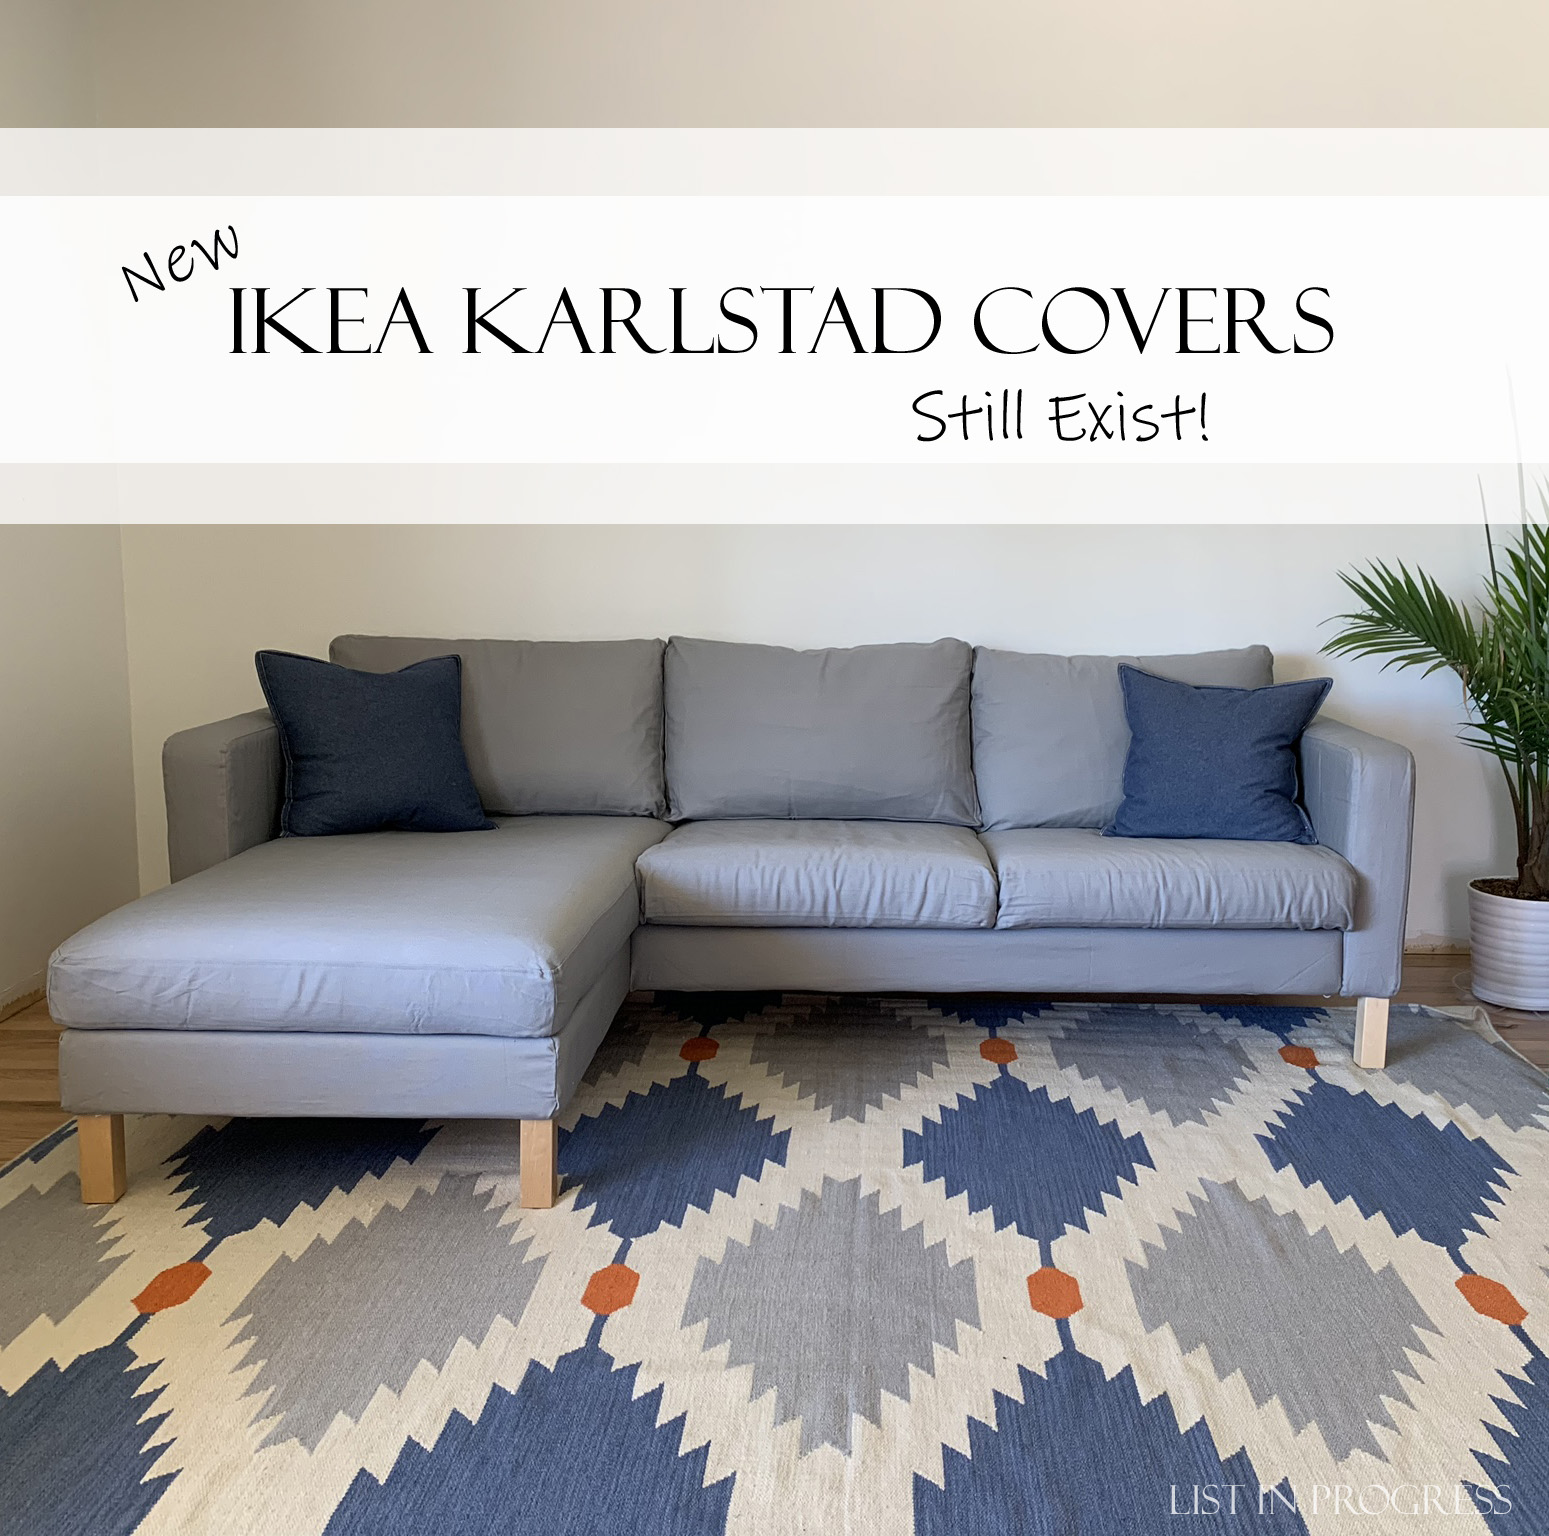 Cool An Ikea Karlstad Couch Cover Saves The Day List In Progress Gmtry Best Dining Table And Chair Ideas Images Gmtryco